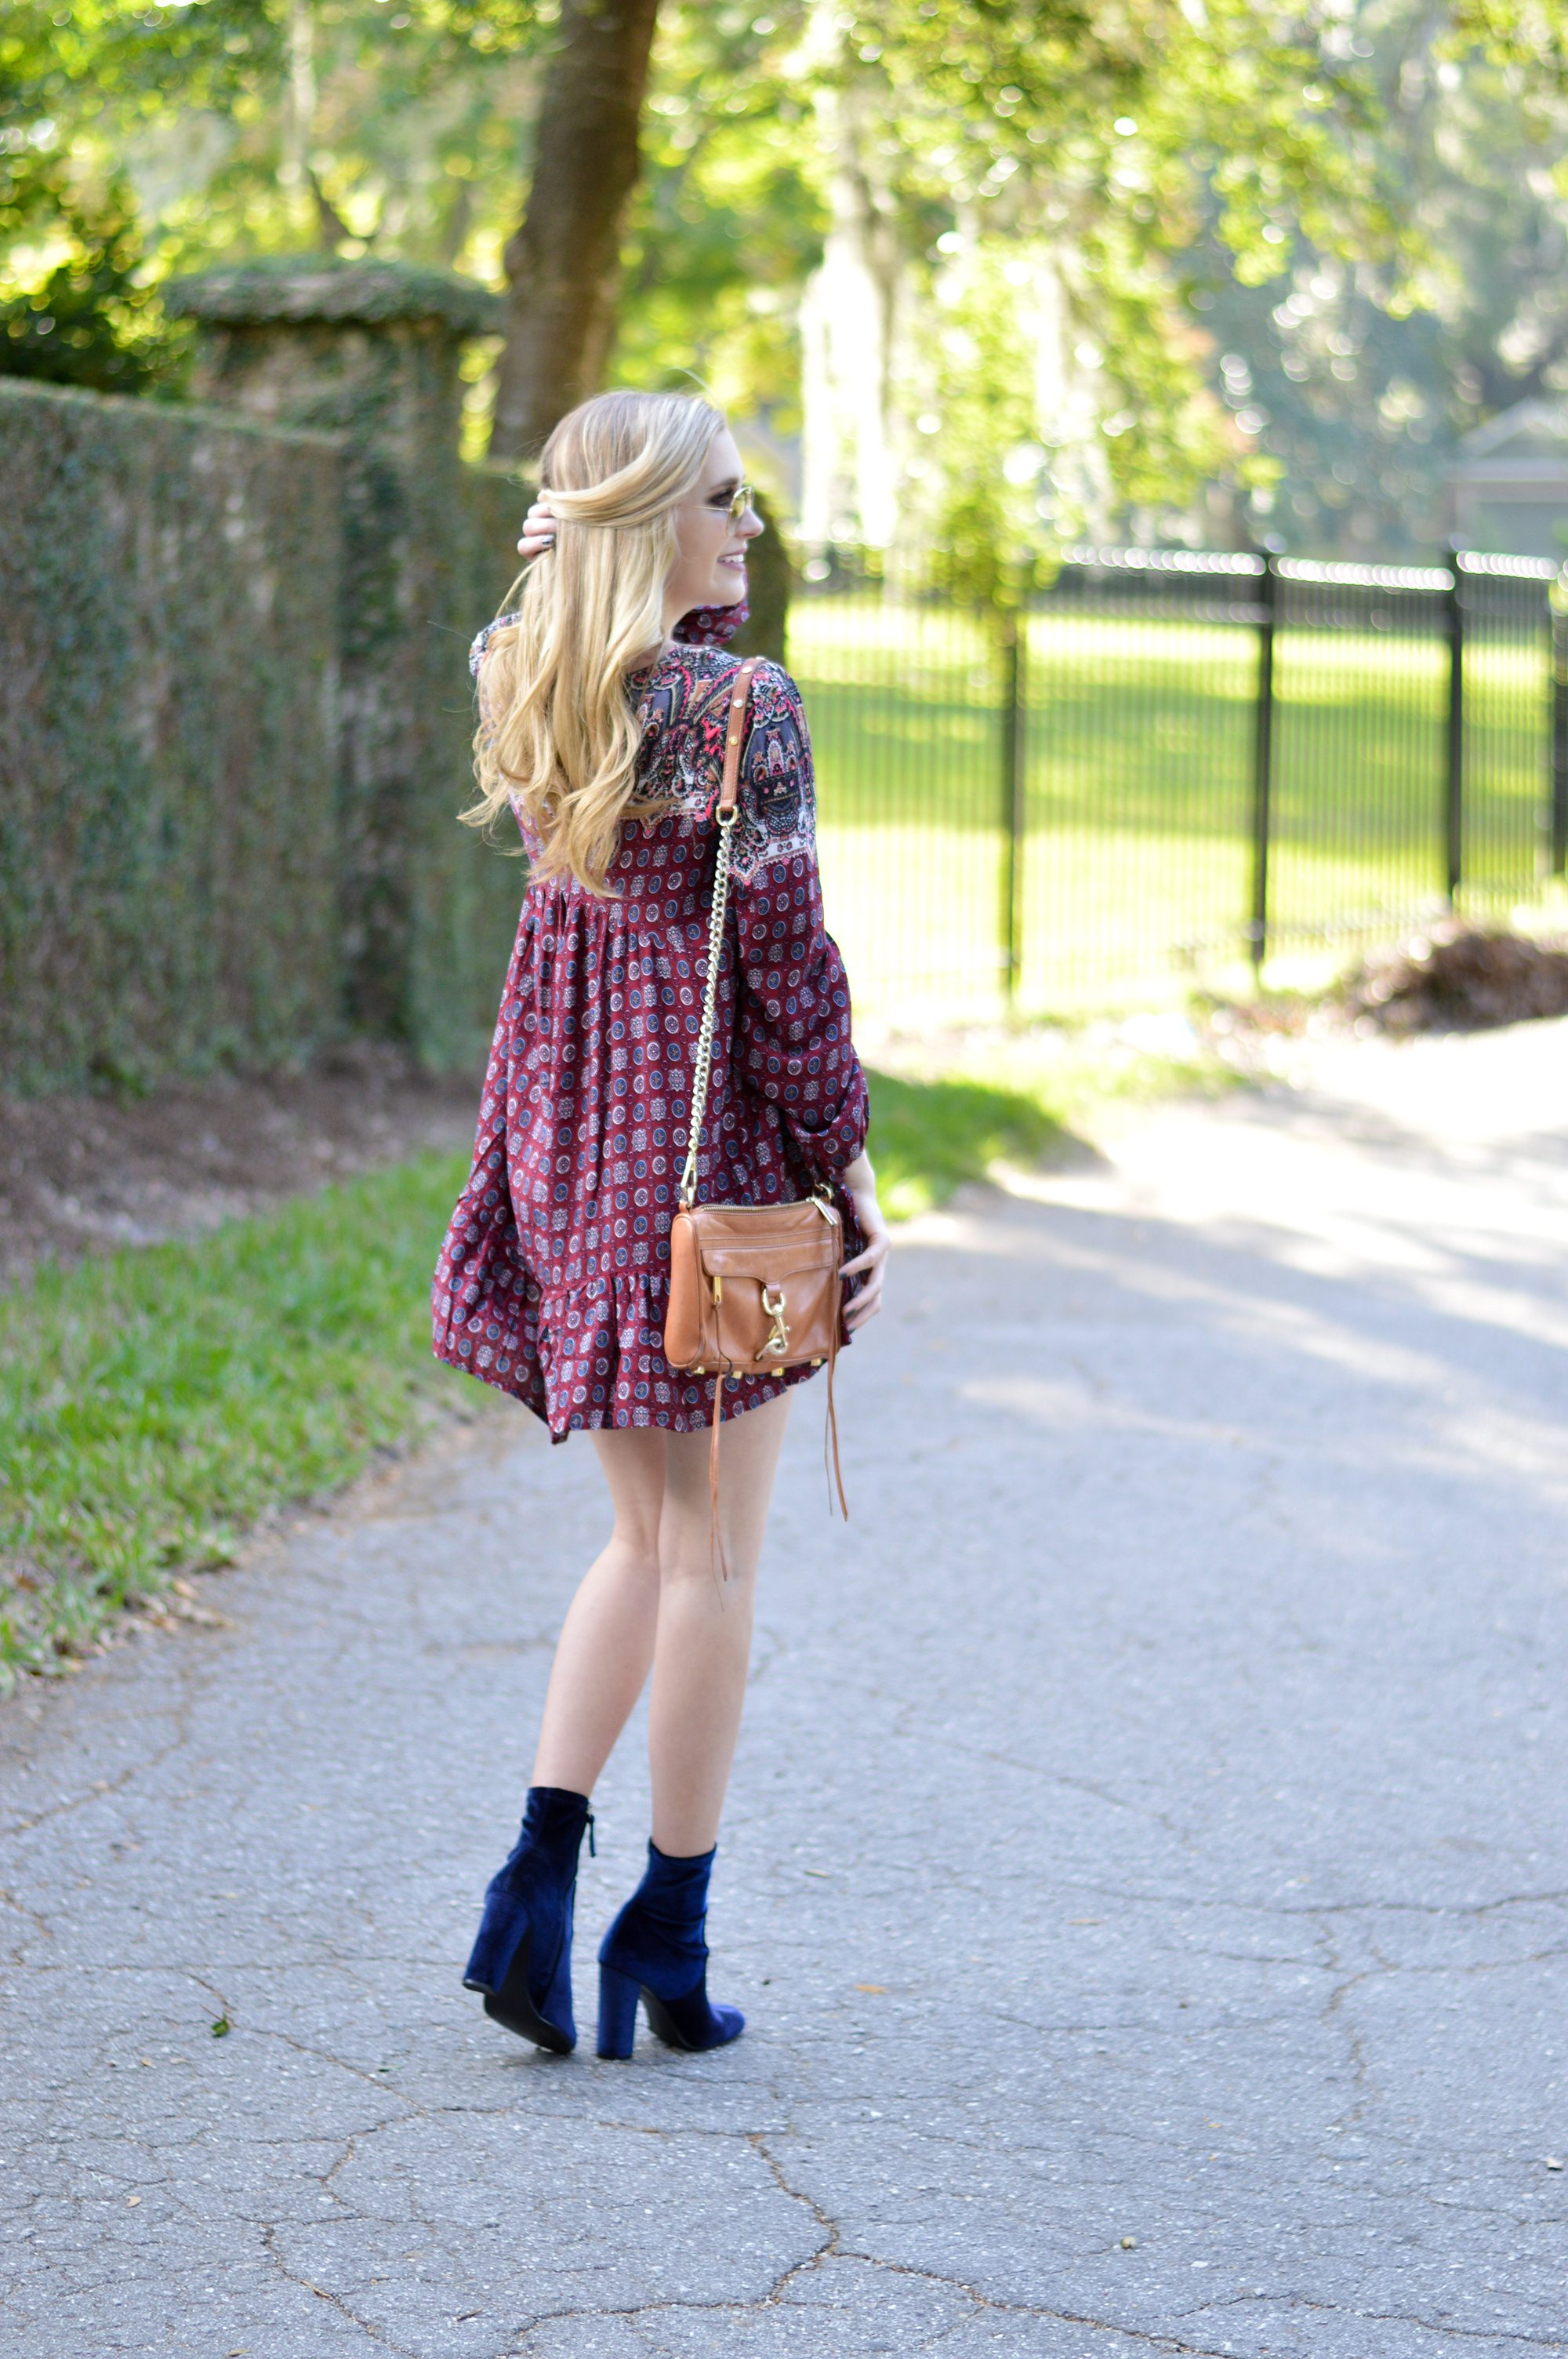 styelled-blog-fblogger-style-blogger-fashion-trends-fall-fashions-trendy-sweater-weather-dresses-fall-dress-suede-velvet-blue-blonde-src-shannon-roth-collections-ootd-umgee-07